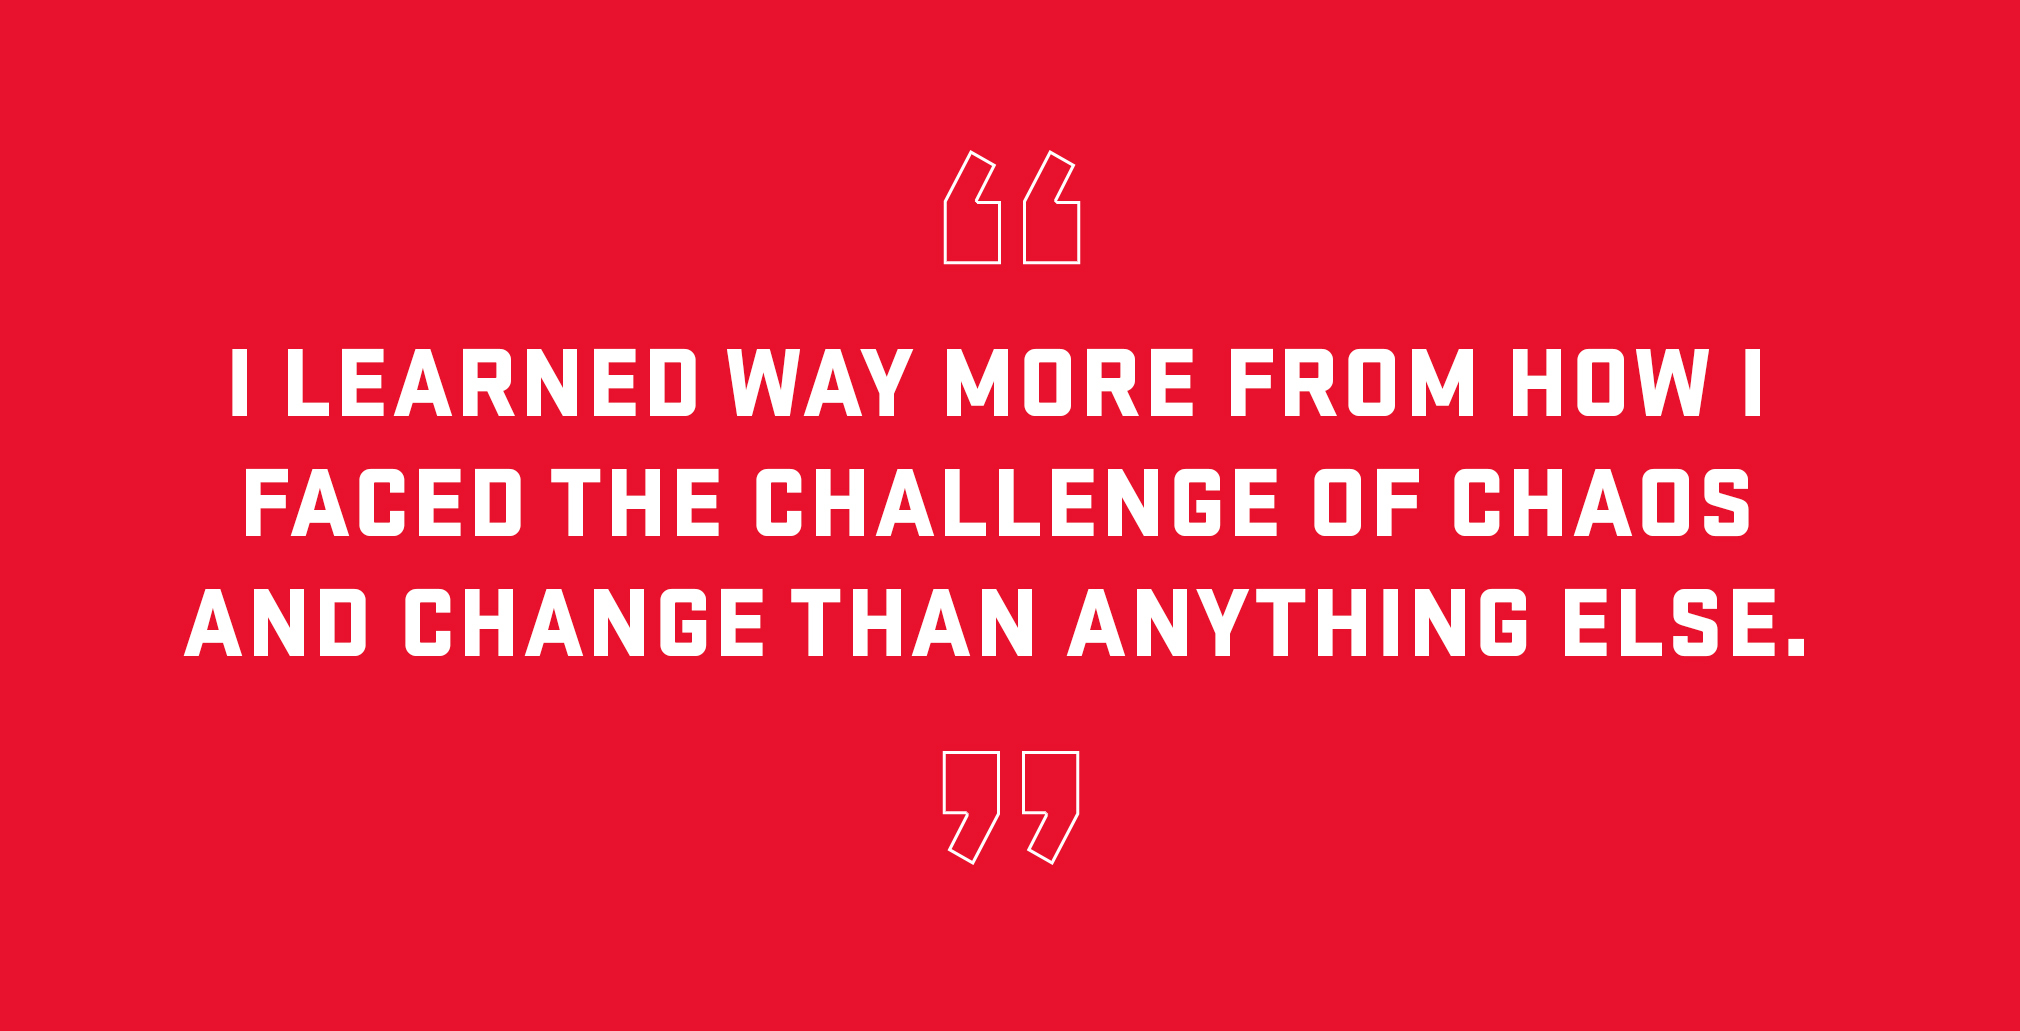 Block quote: I learned way more from how I faced the challenge of chaos and change than anything else.